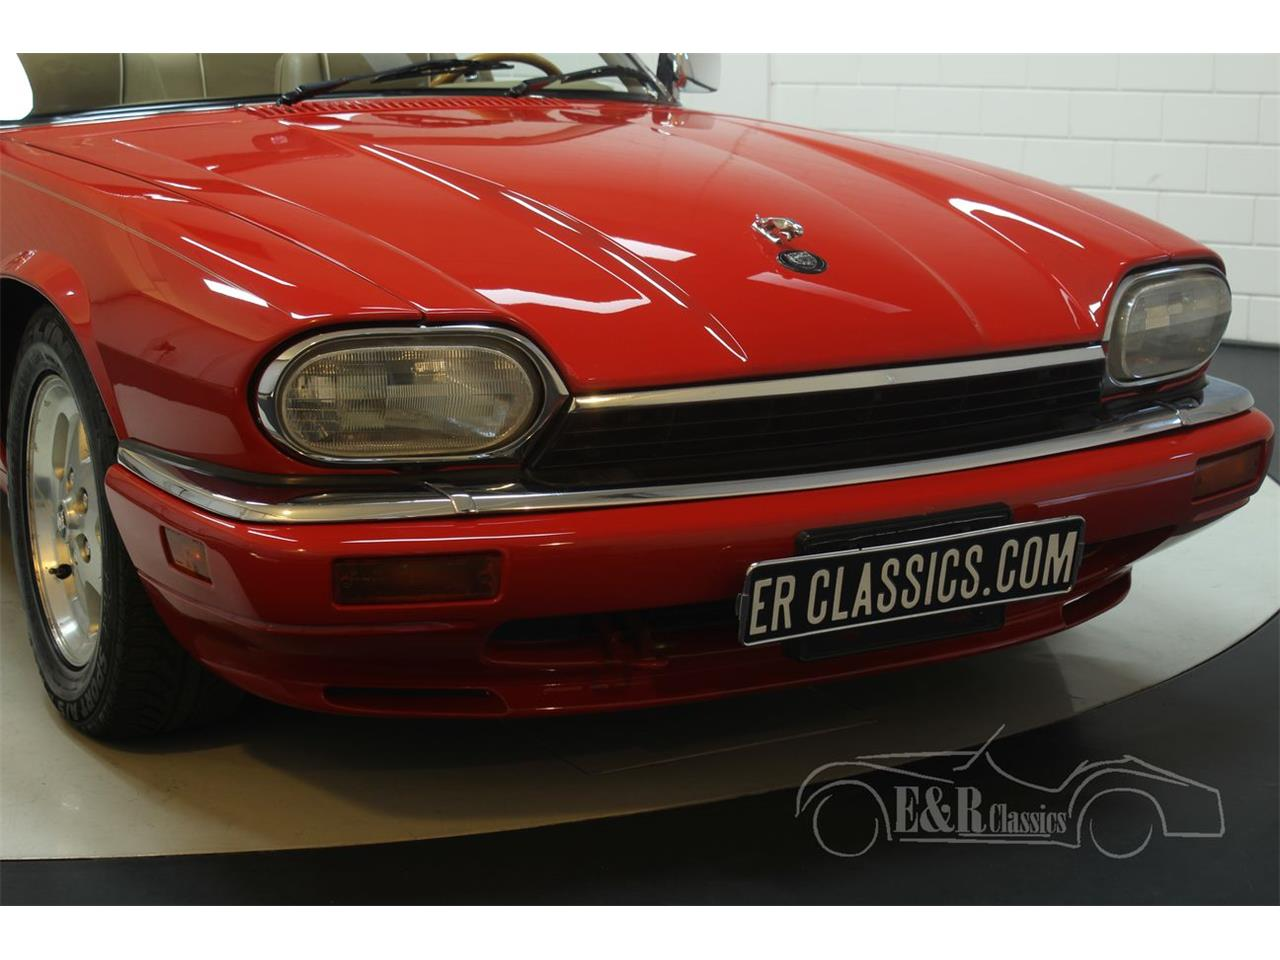 Large Picture of 1996 Jaguar XJS located in Waalwijk noord Brabant - $45,200.00 Offered by E & R Classics - PR0N